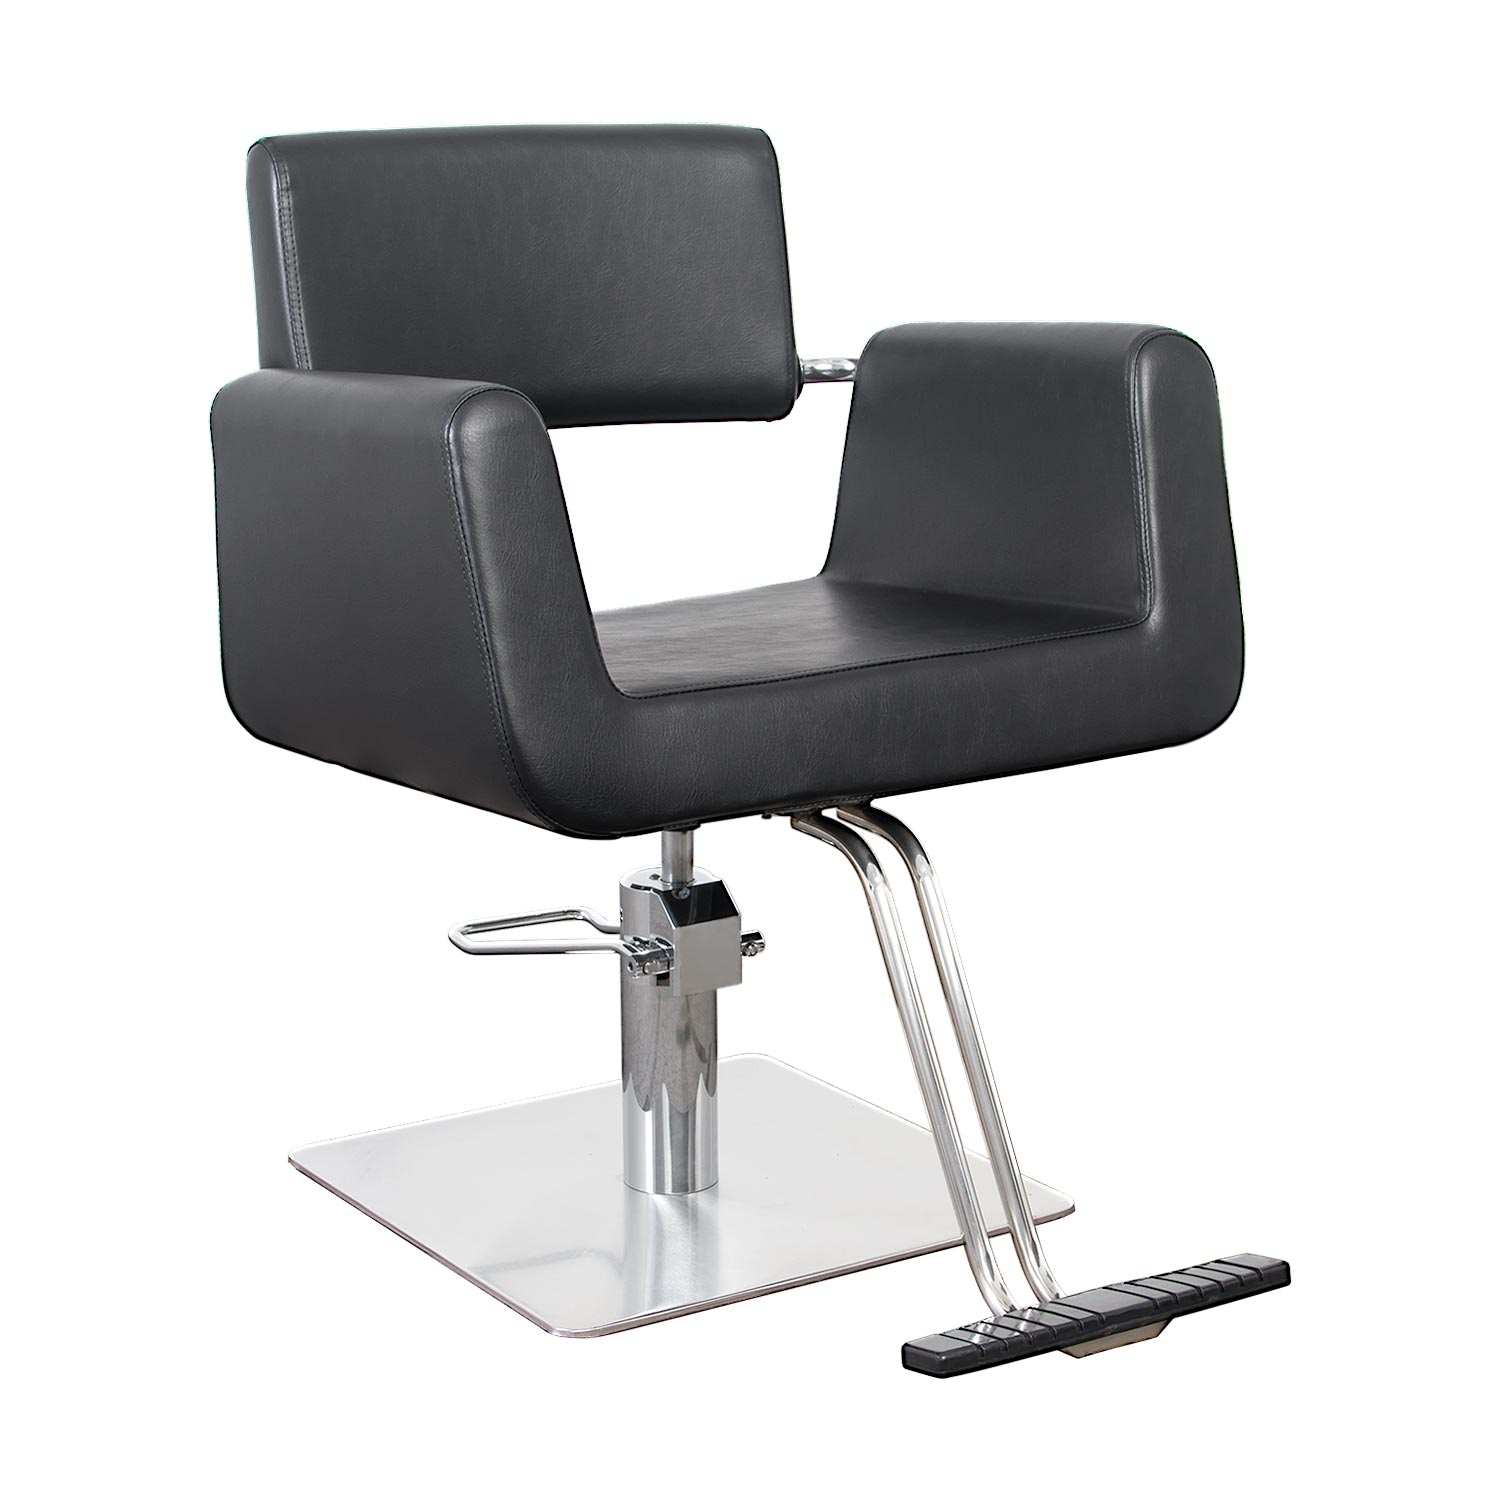 Salonsmart Unveils Salon Equipment Styling Chairs Inspired